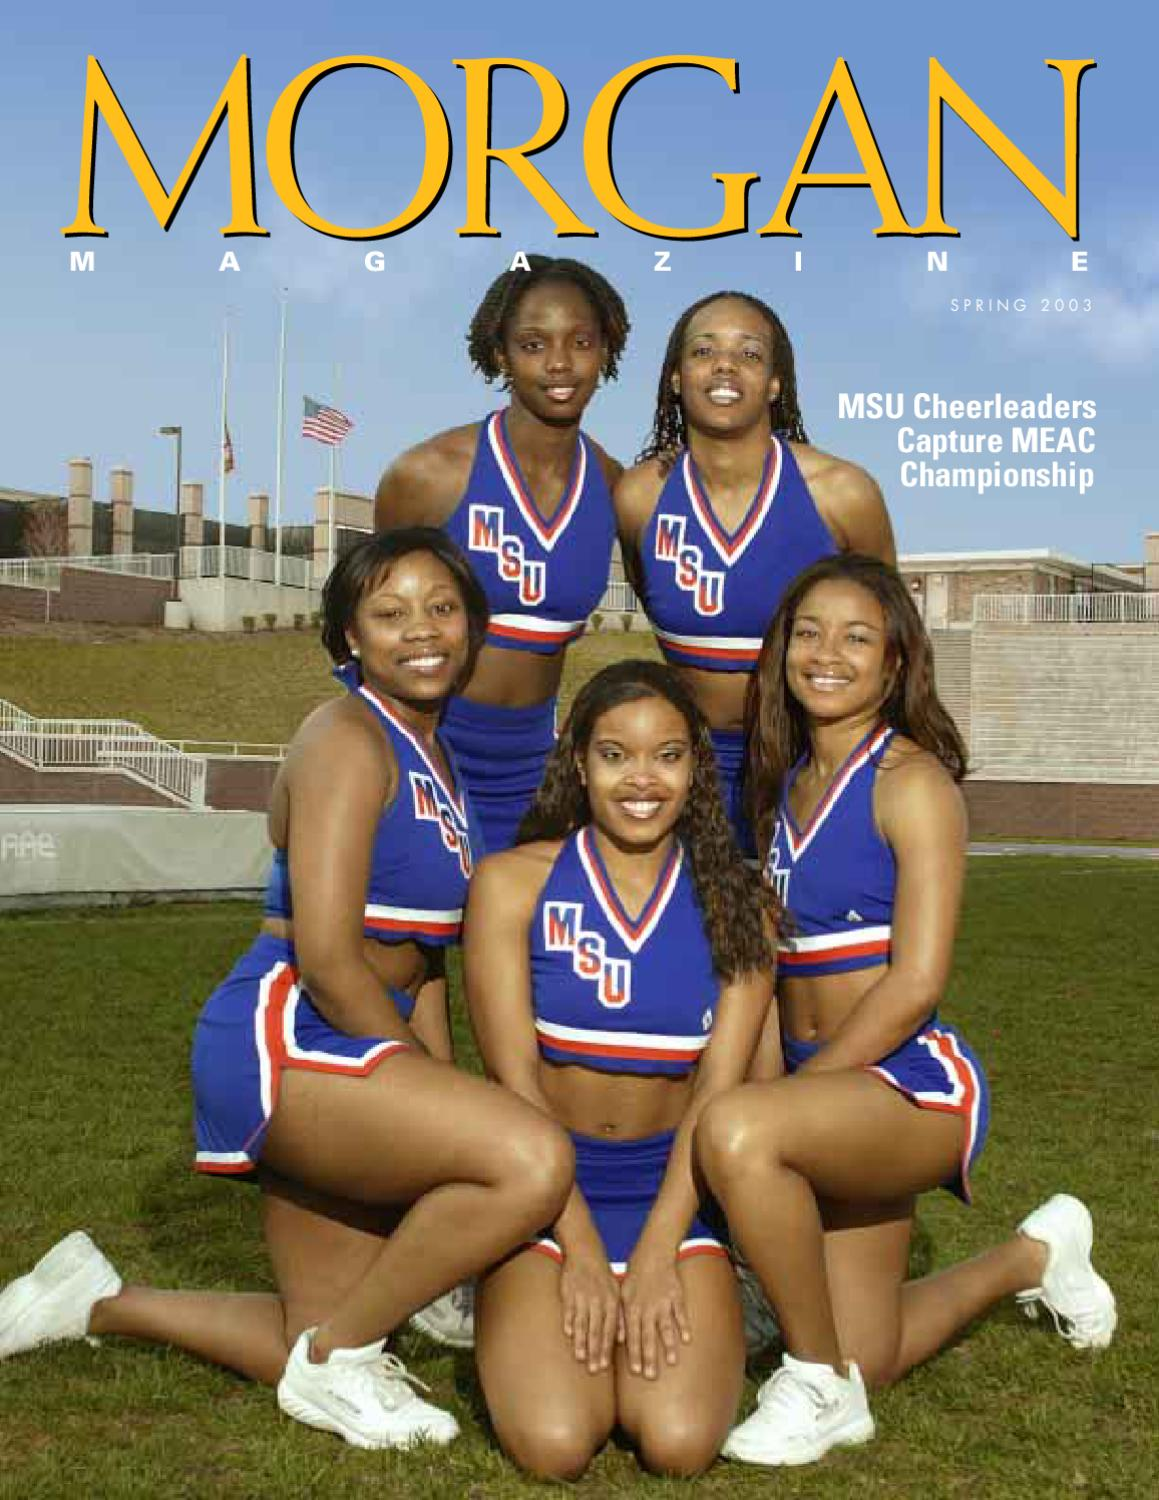 Morgan Magazine Spring 2003 Issue By Morgan State